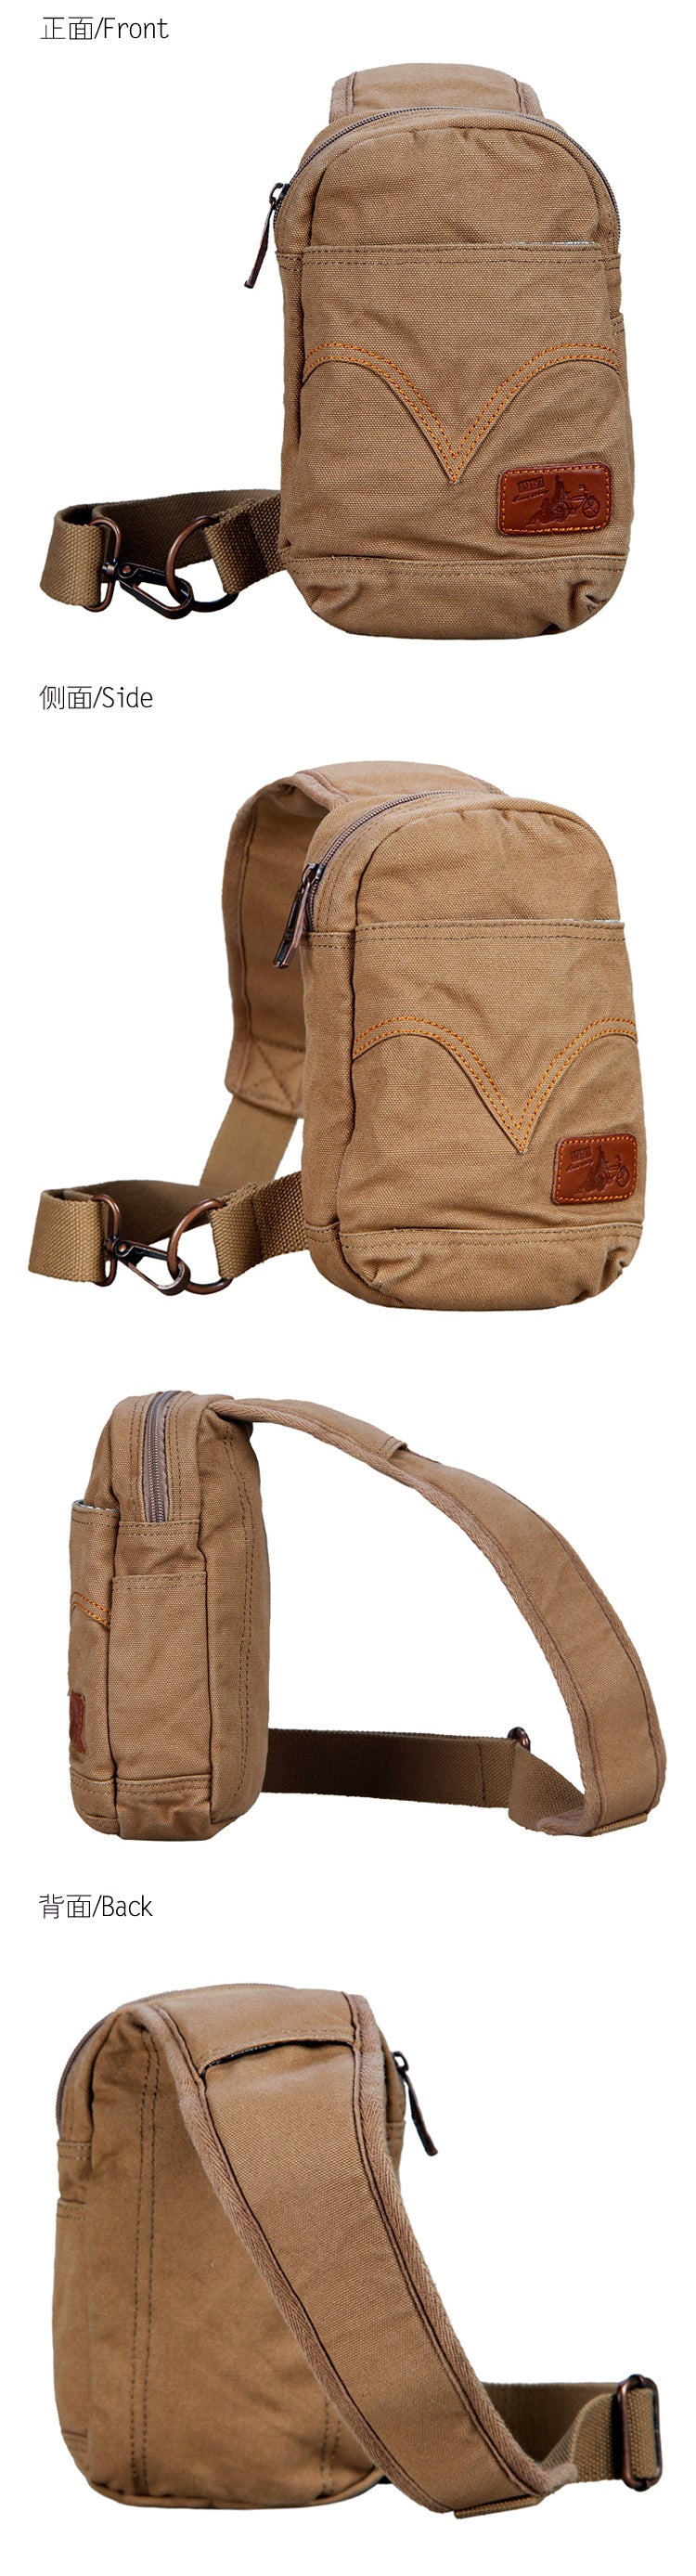 Men's Vintage Canvas Backpack Shoulder Sling Bicycle Chest Hiking CrossBody Bag